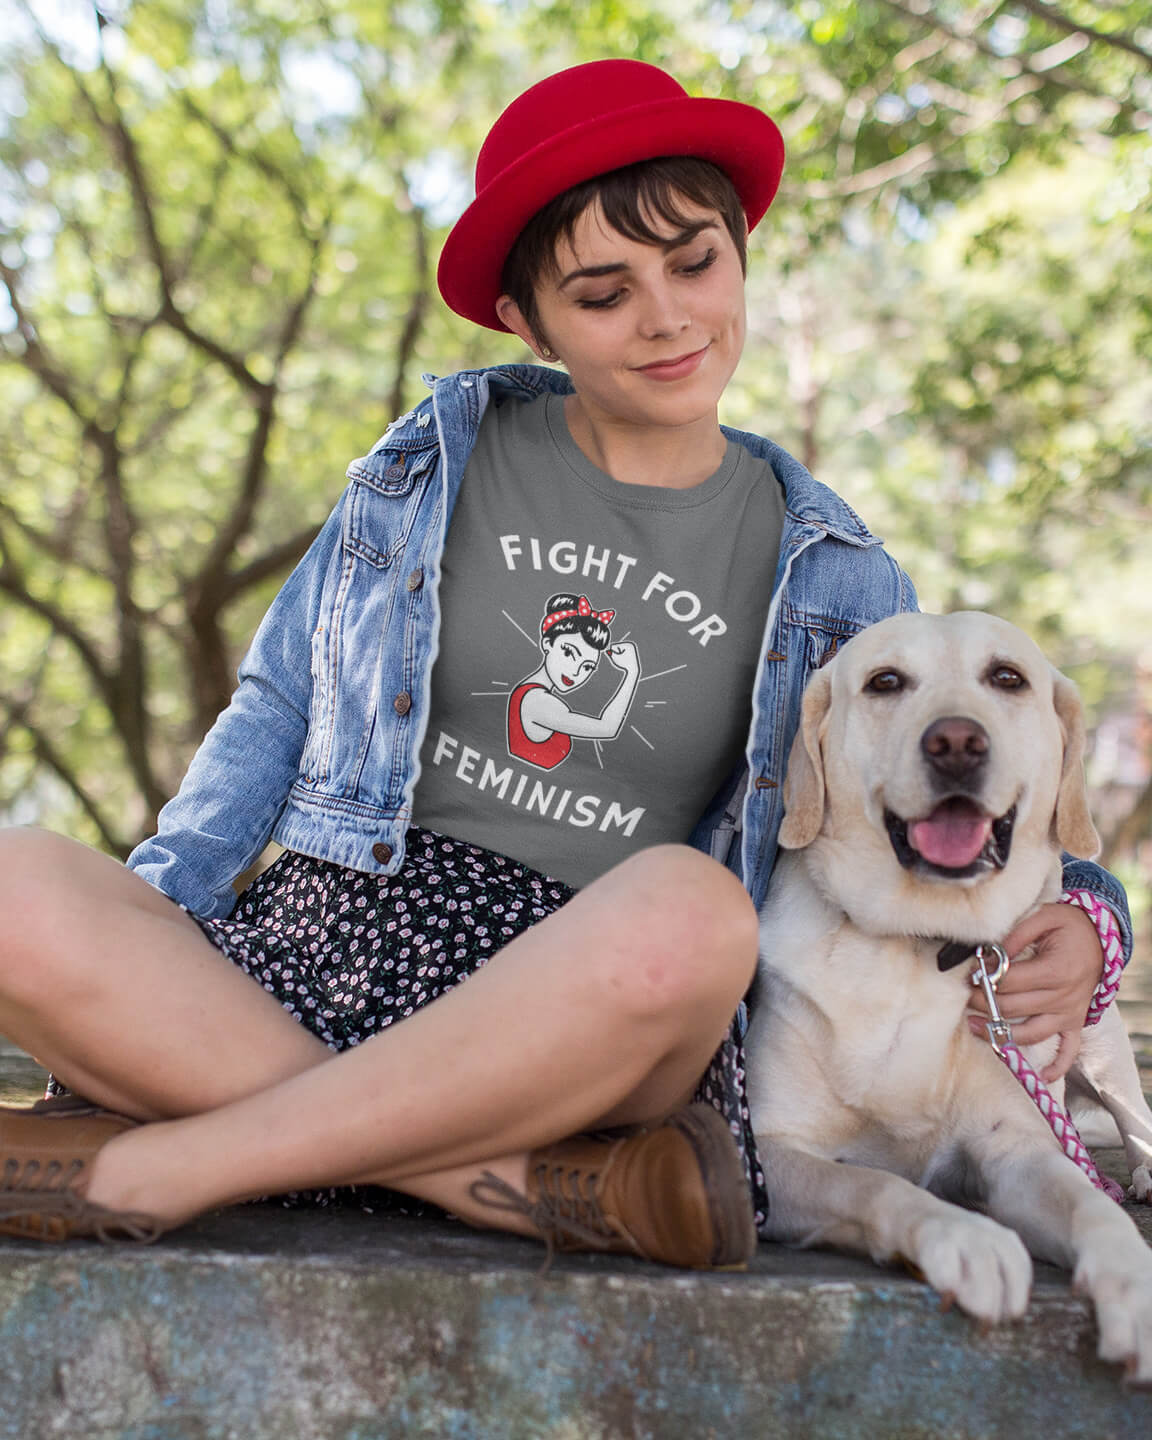 Woman petting her dog wearing Fight For Feminism shirt